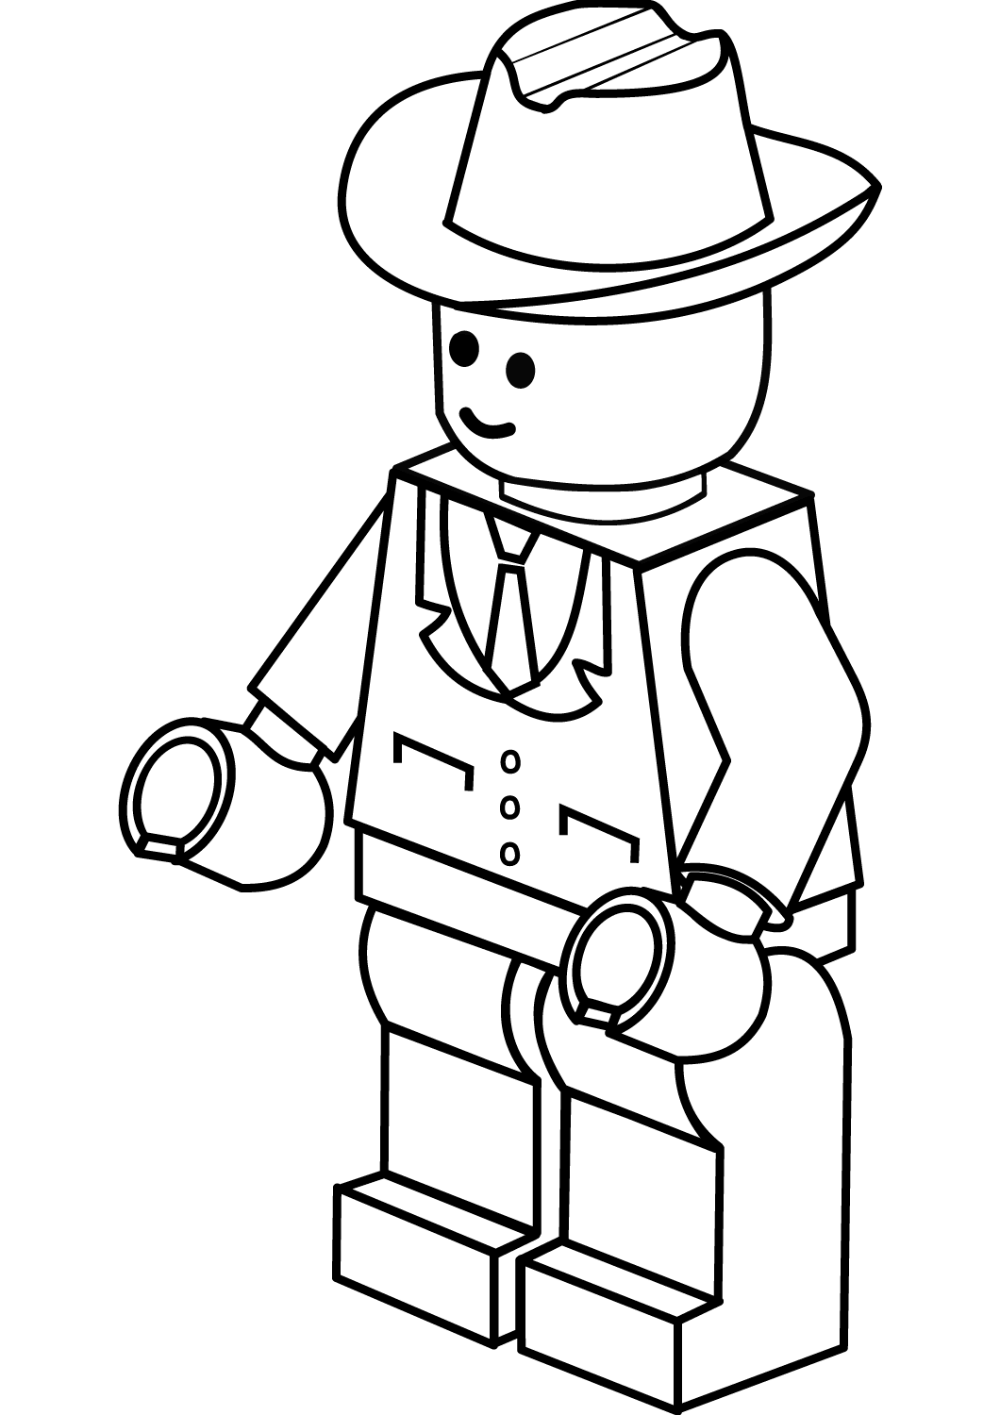 lego coloring pages printable lego coloring pages with characters chima ninjago city pages printable lego coloring